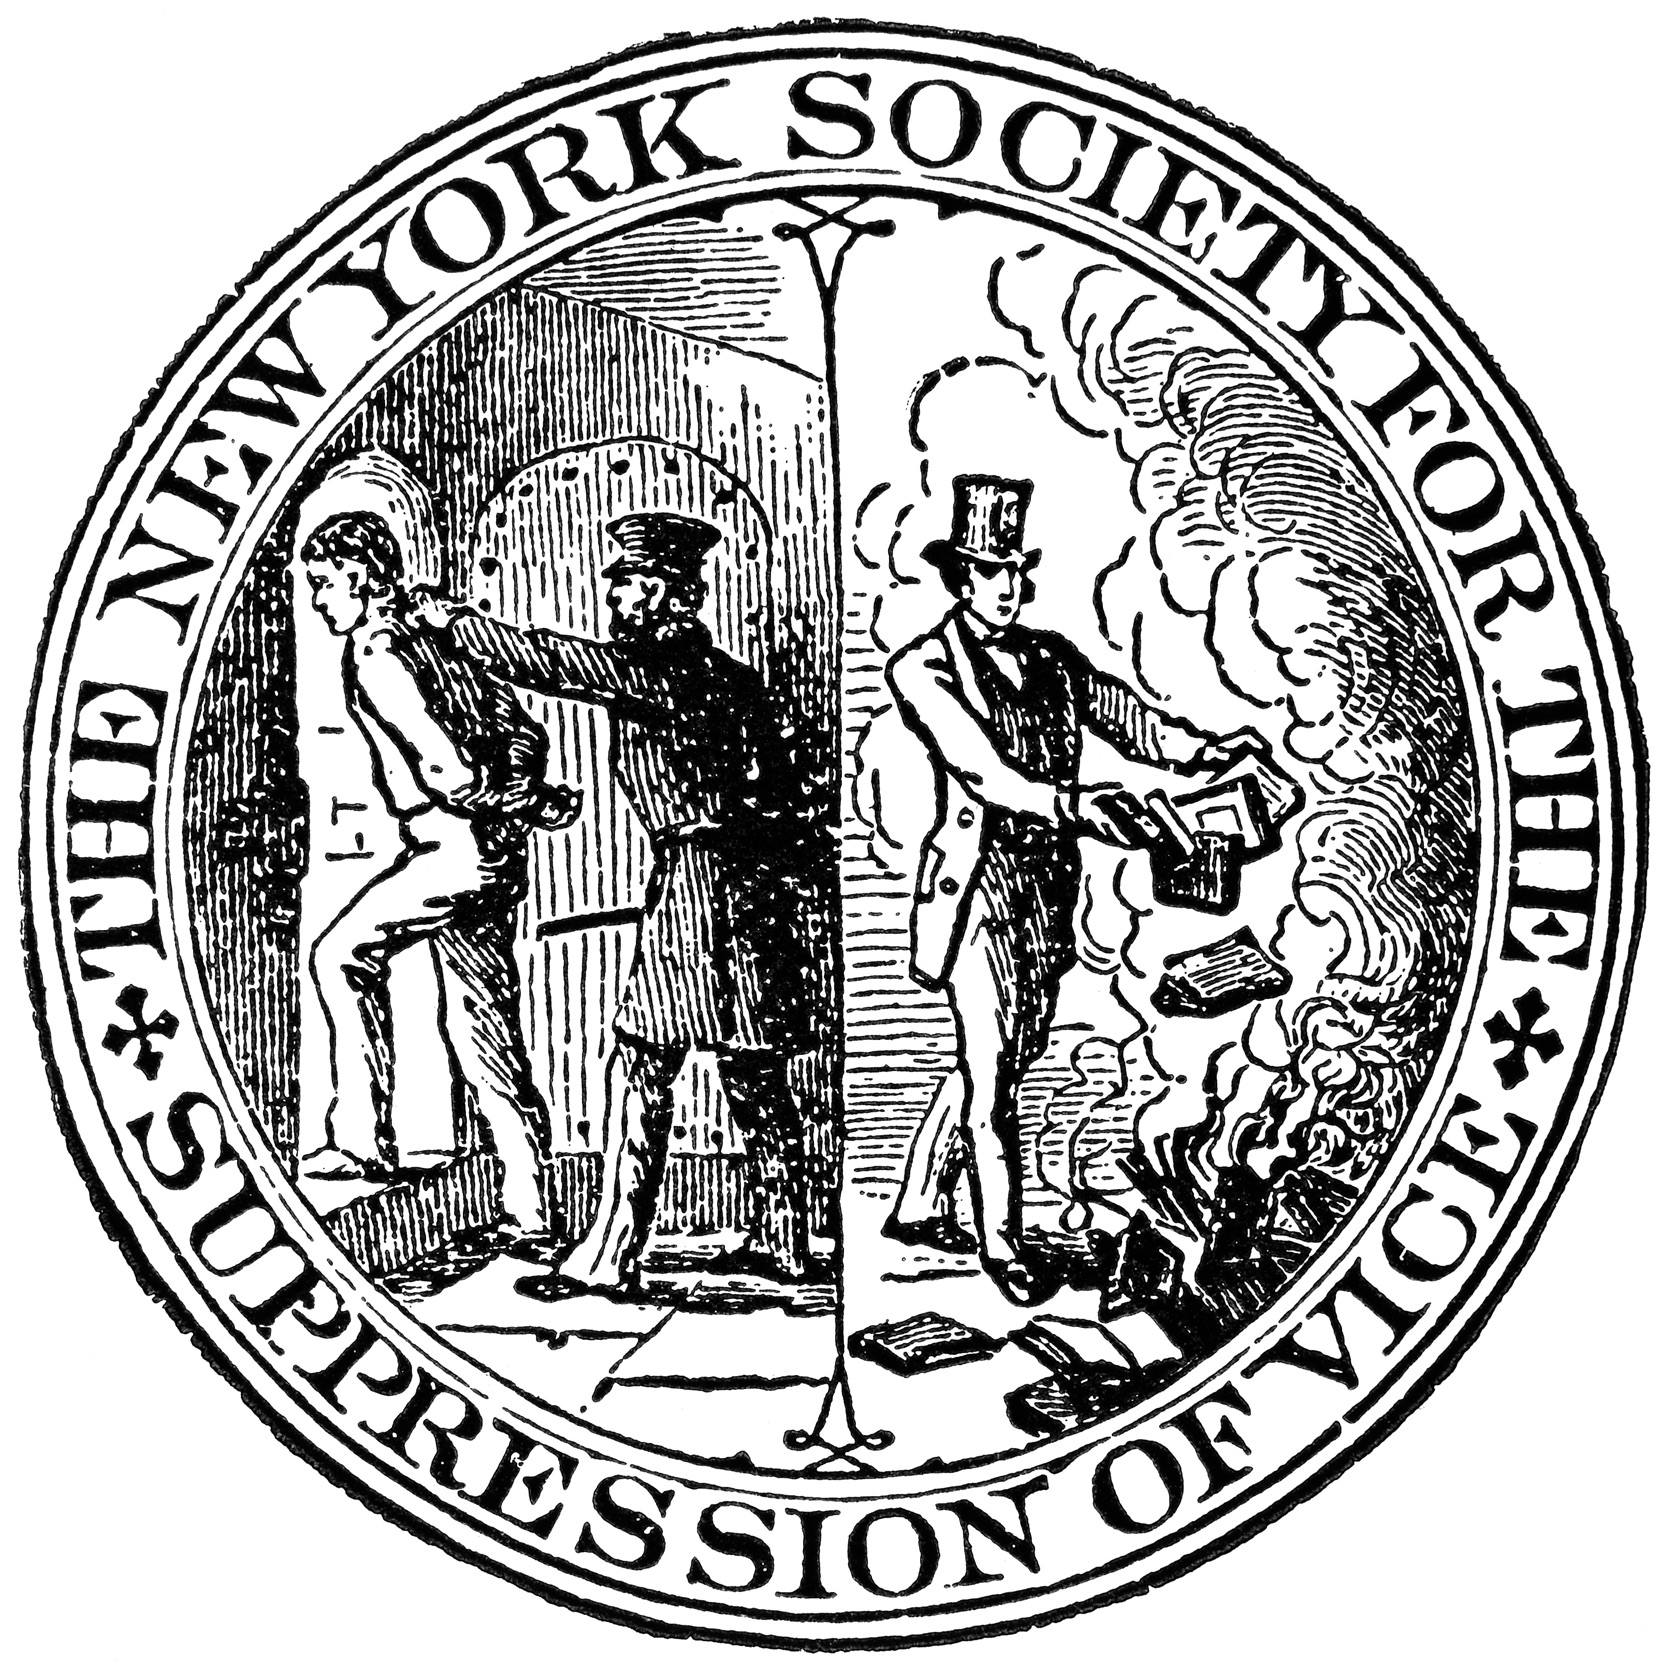 File:NewYorkSocietyForTheSuppressionOfVice.jpg